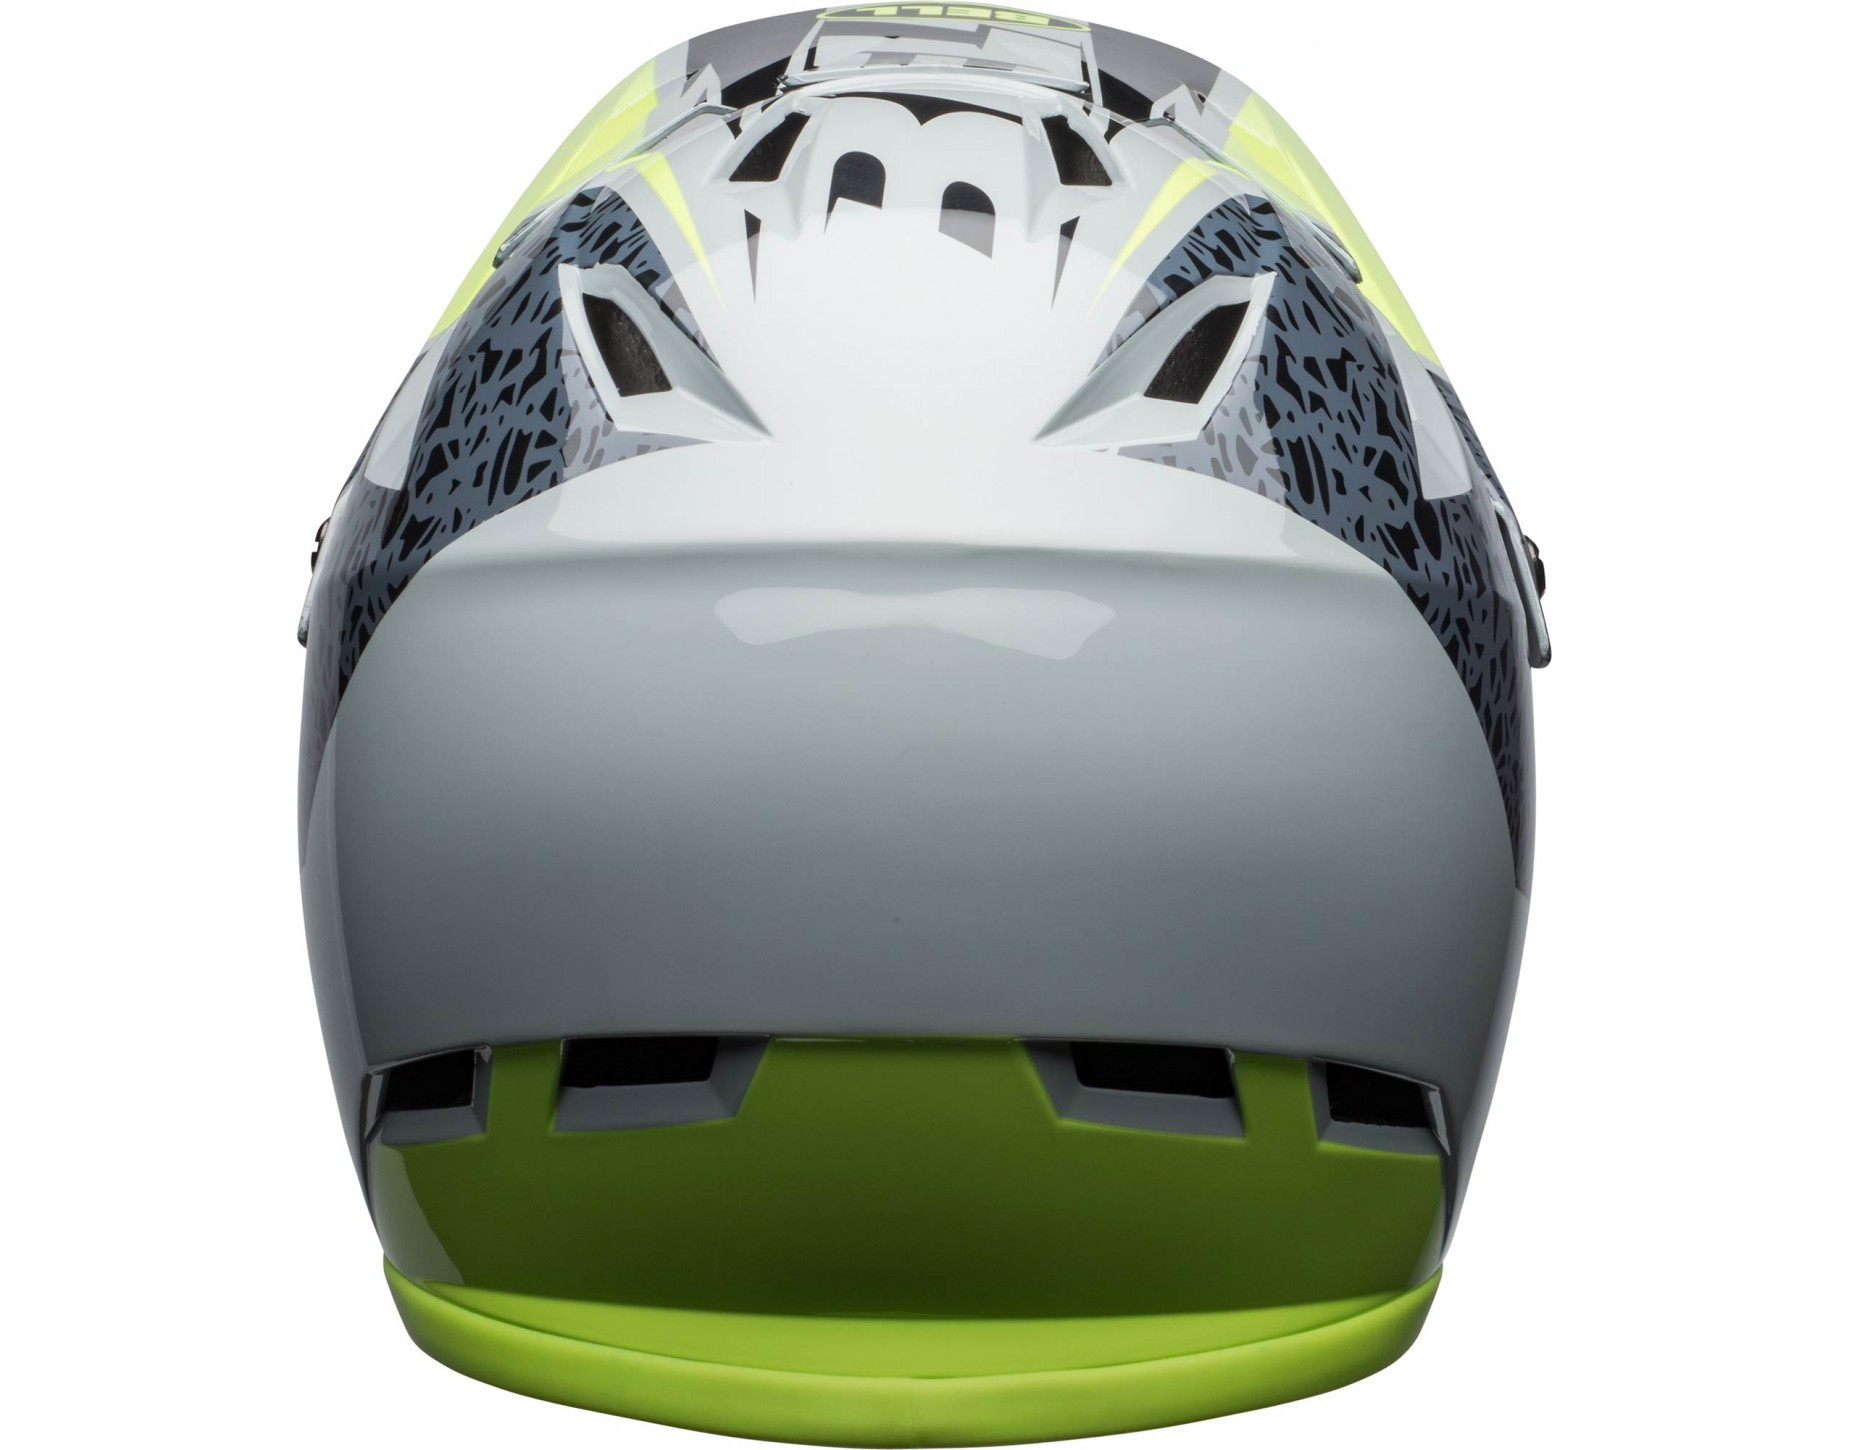 abbastanza BELL SANCTION full face helmet – everything you need! | ROSE Bikes OD51